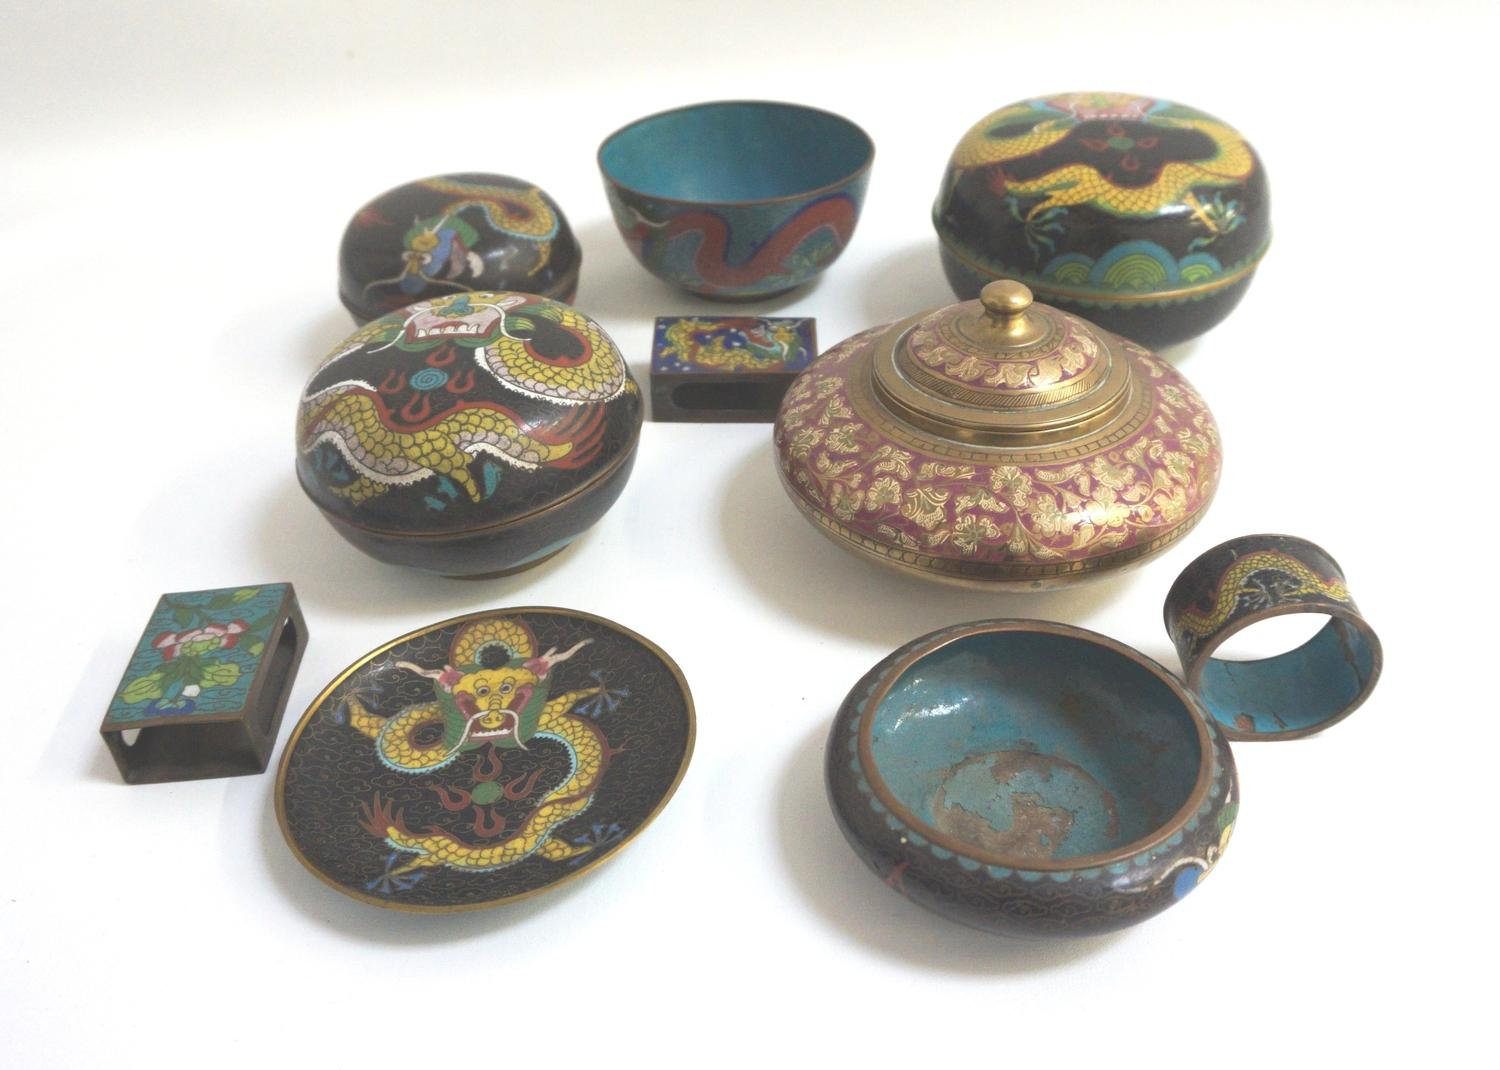 Lot 296 - SELECTION OF CLOISONNE ITEMS including three circular lidded bowls decorated with dragons, two